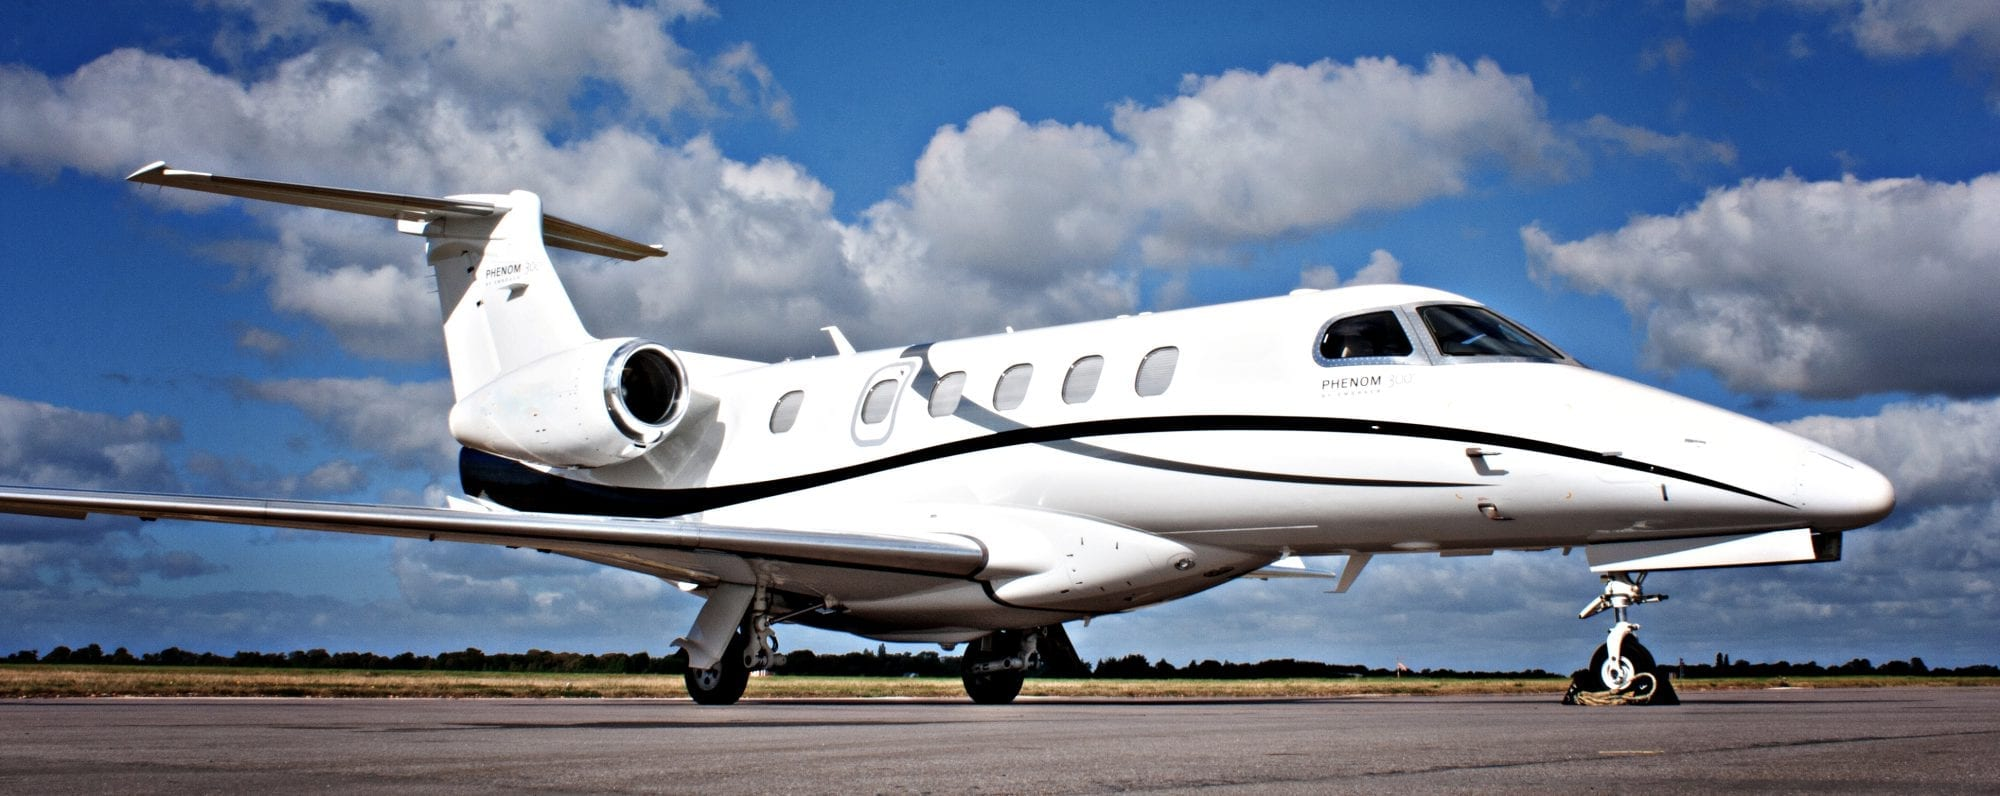 embraer Phenom 300 aircraft for sale